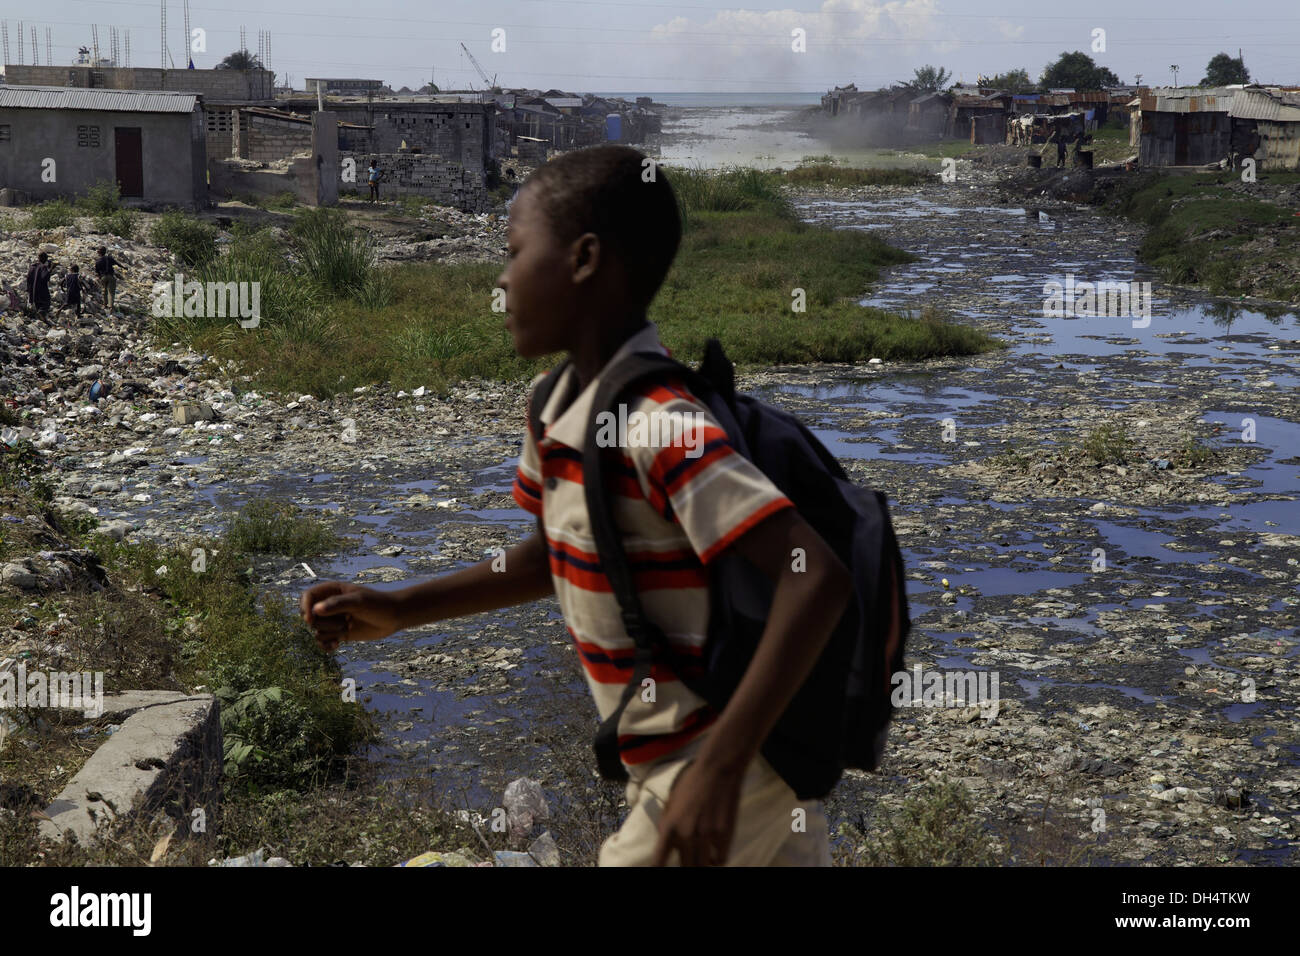 Canal with raw sewage in Port-au-Prince, Haiti - Stock Image